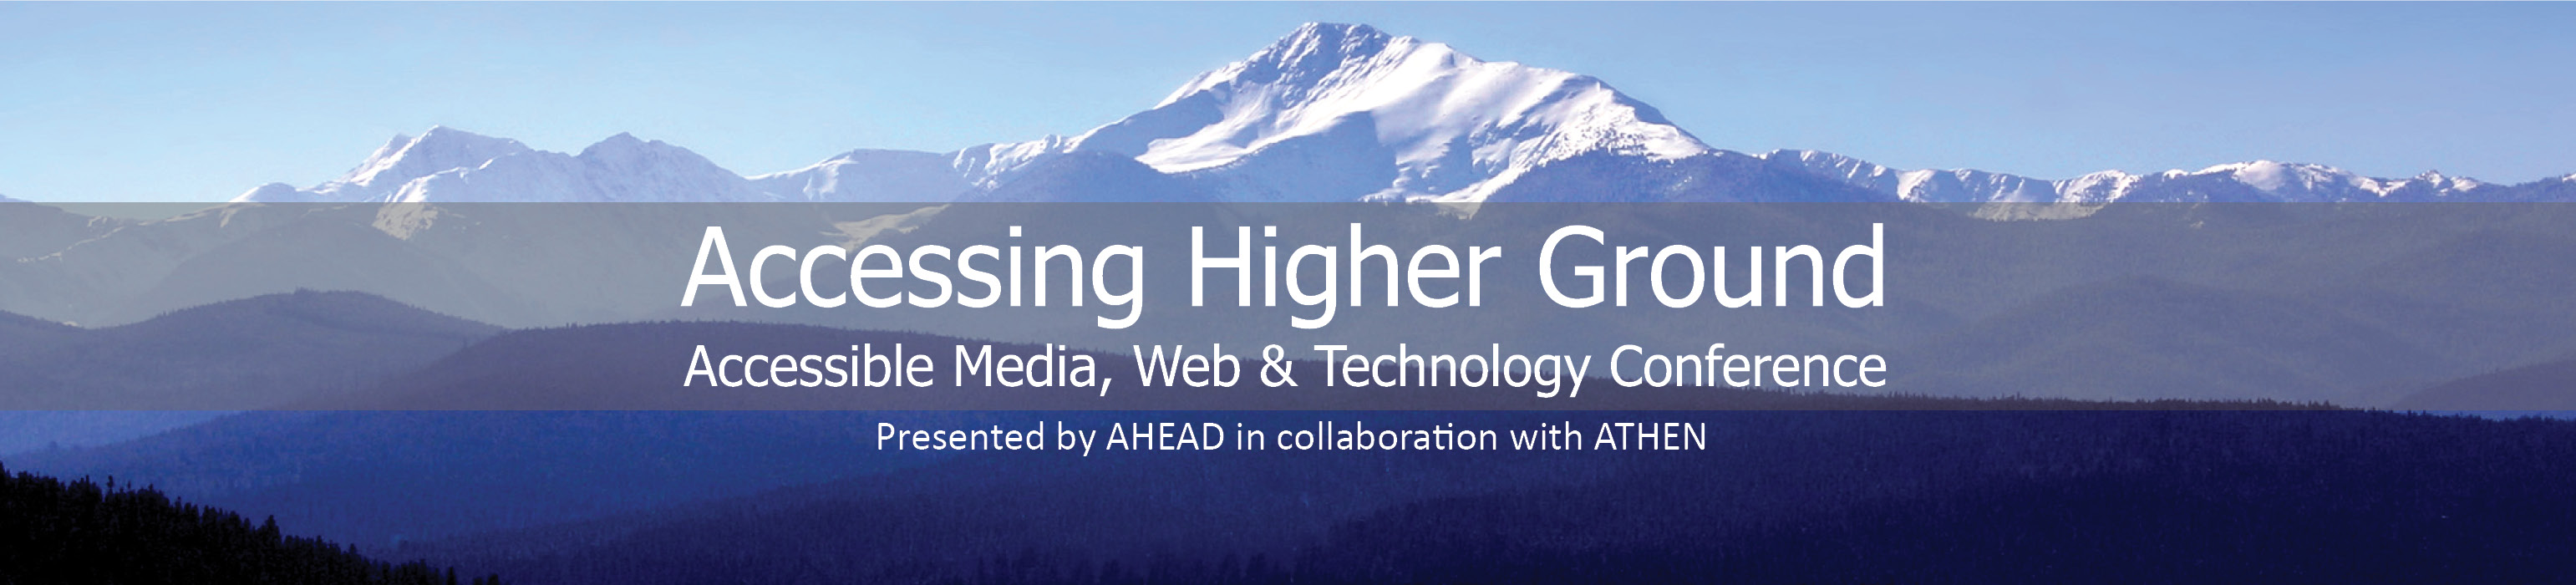 Accessing Higher Ground 2017, November 13 - 17, 2017, Westminster, CO